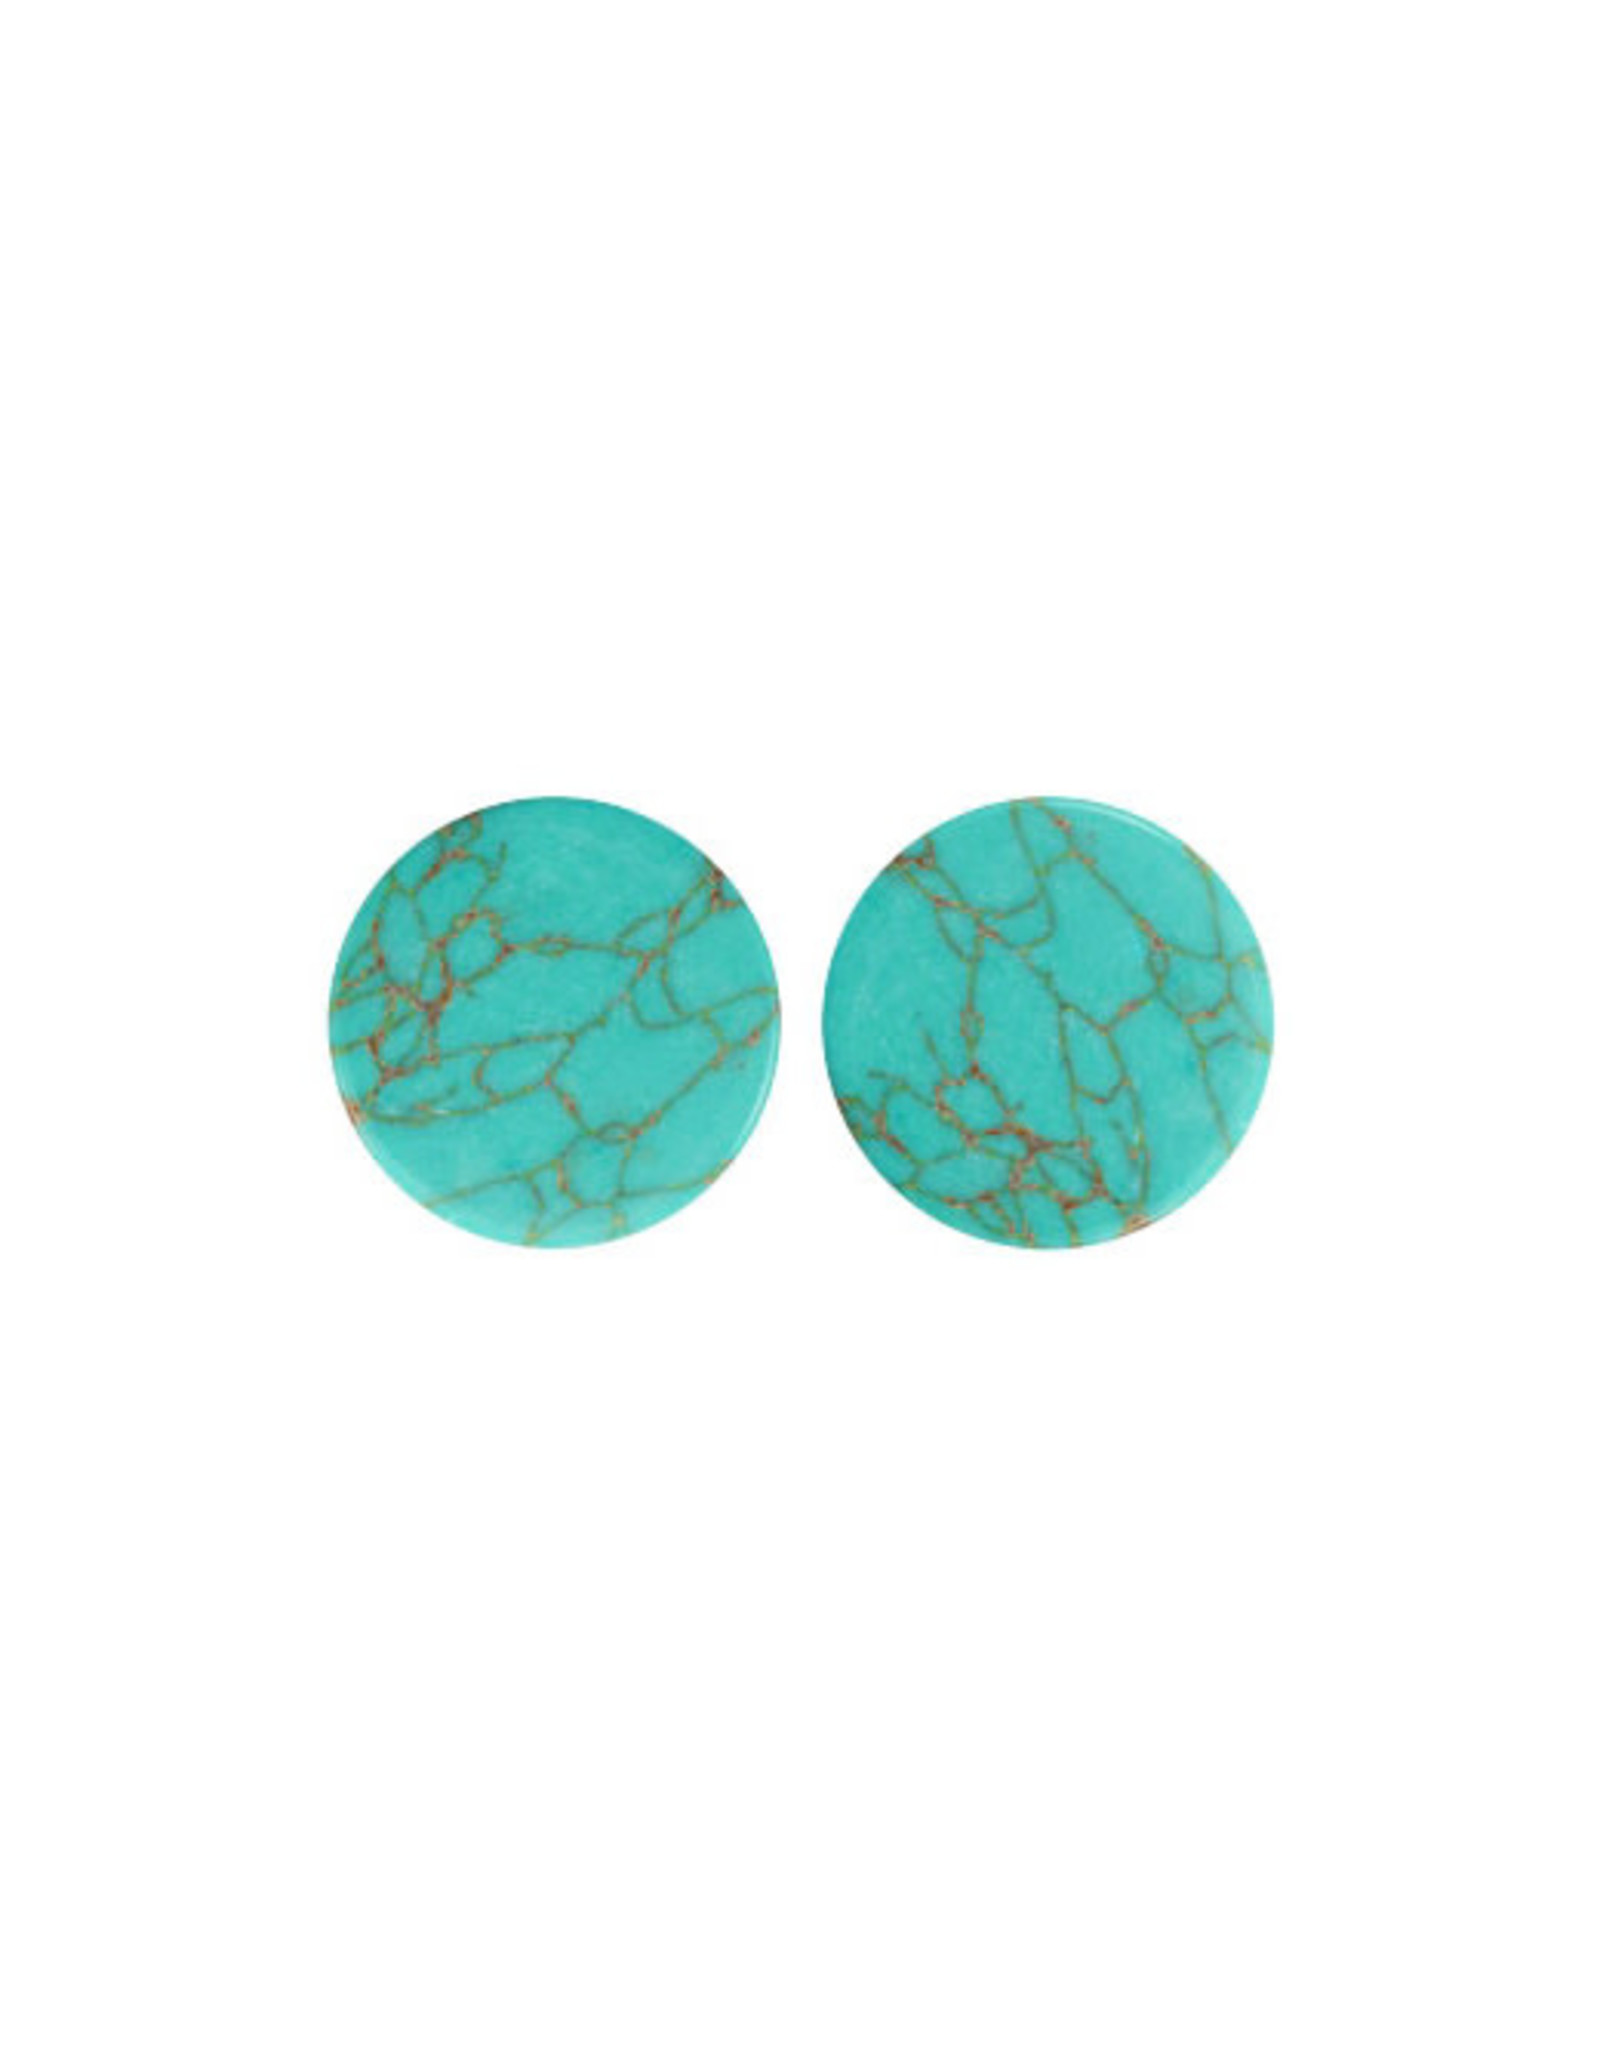 Stekers plat 12mm marmer turquoise